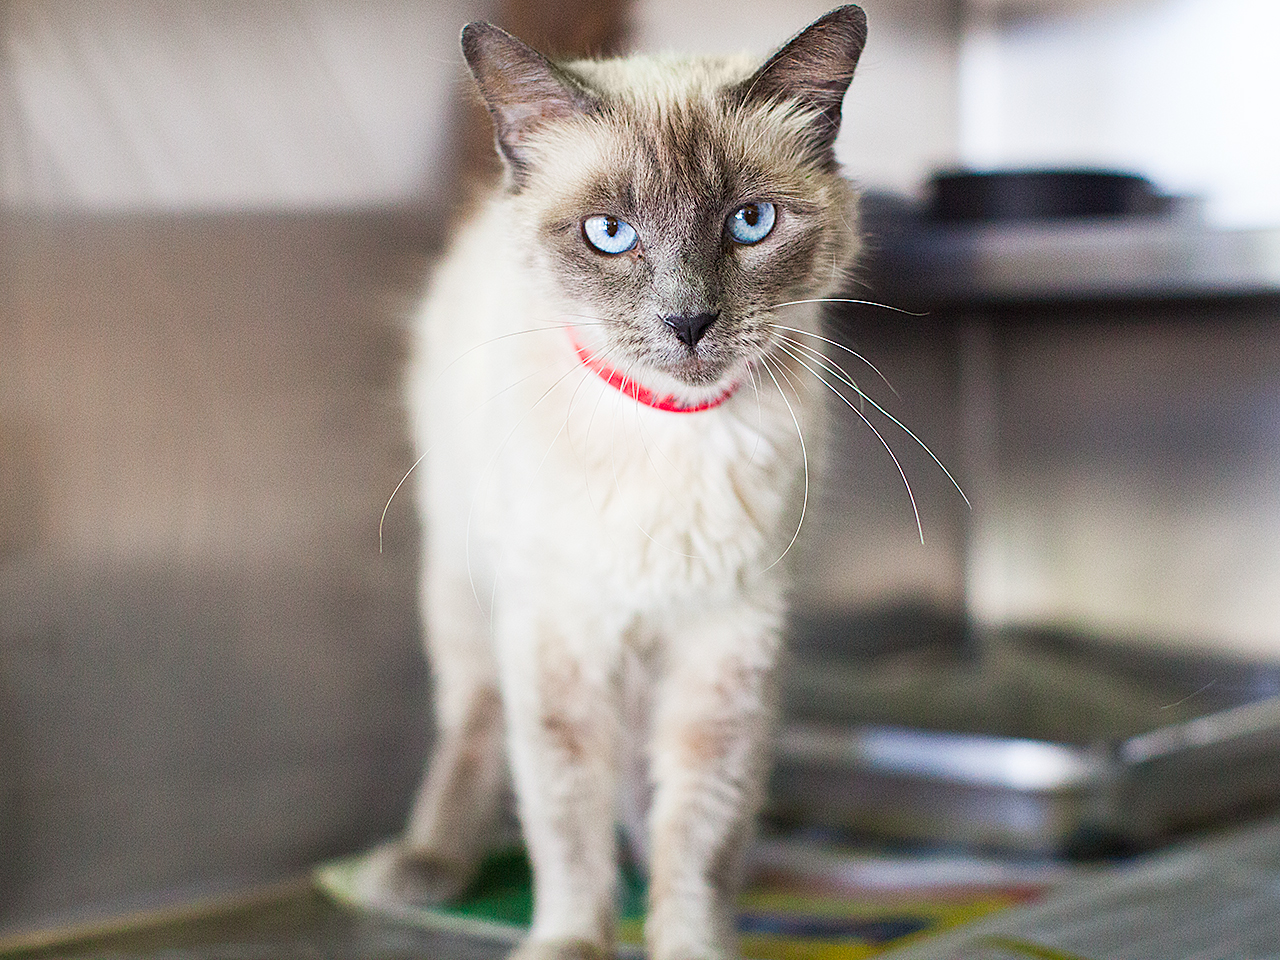 Available for adoption now at South Los Angeles Animal Shelter!